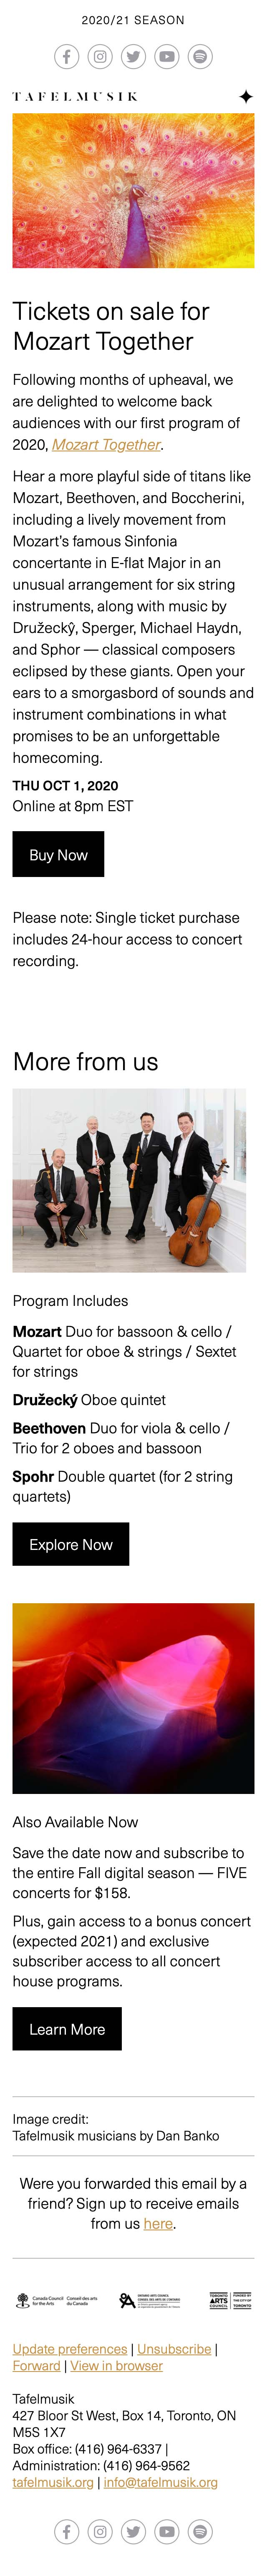 2021 Mozart Together STIX On Sale + Subs - mobile view